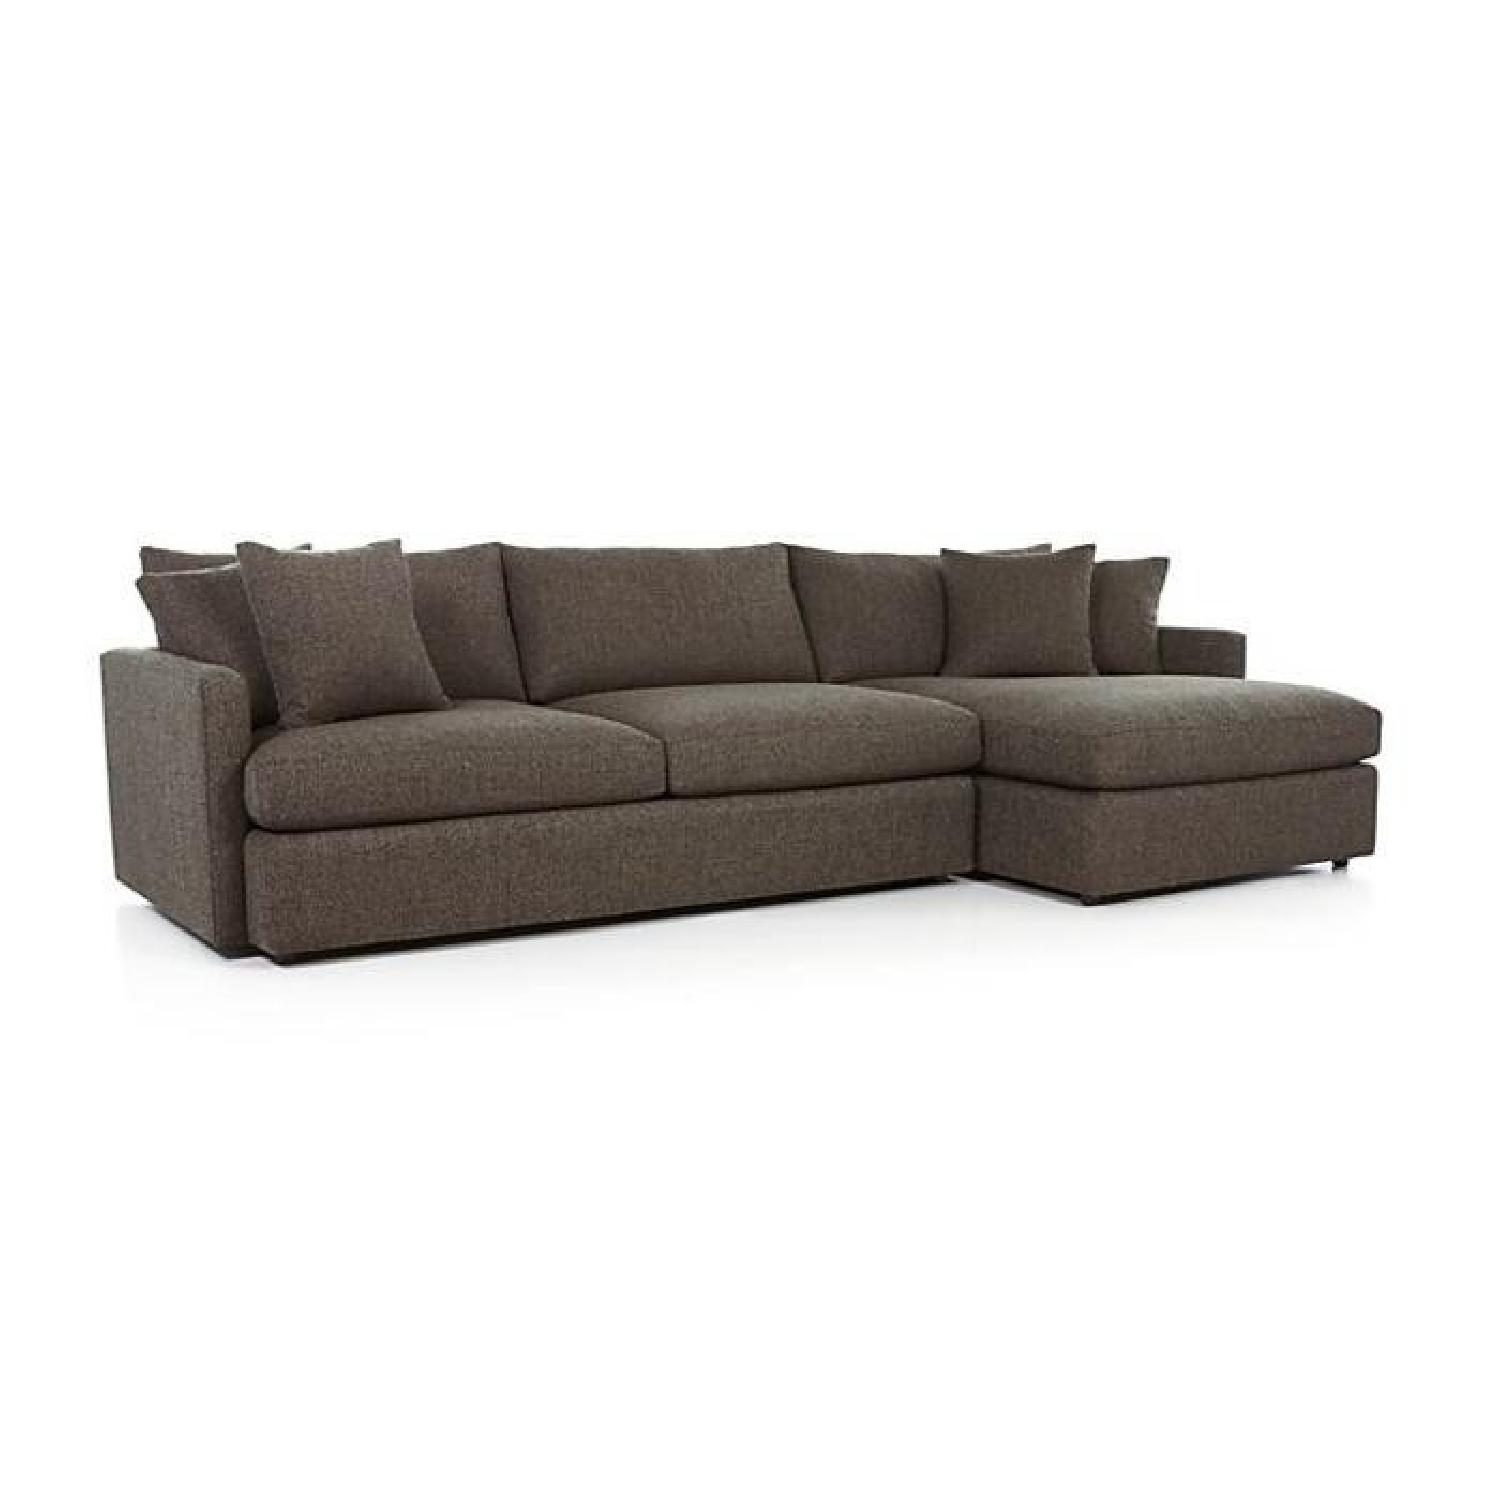 Crate & Barrel Lounge II Left Chaise Sectional Sofa